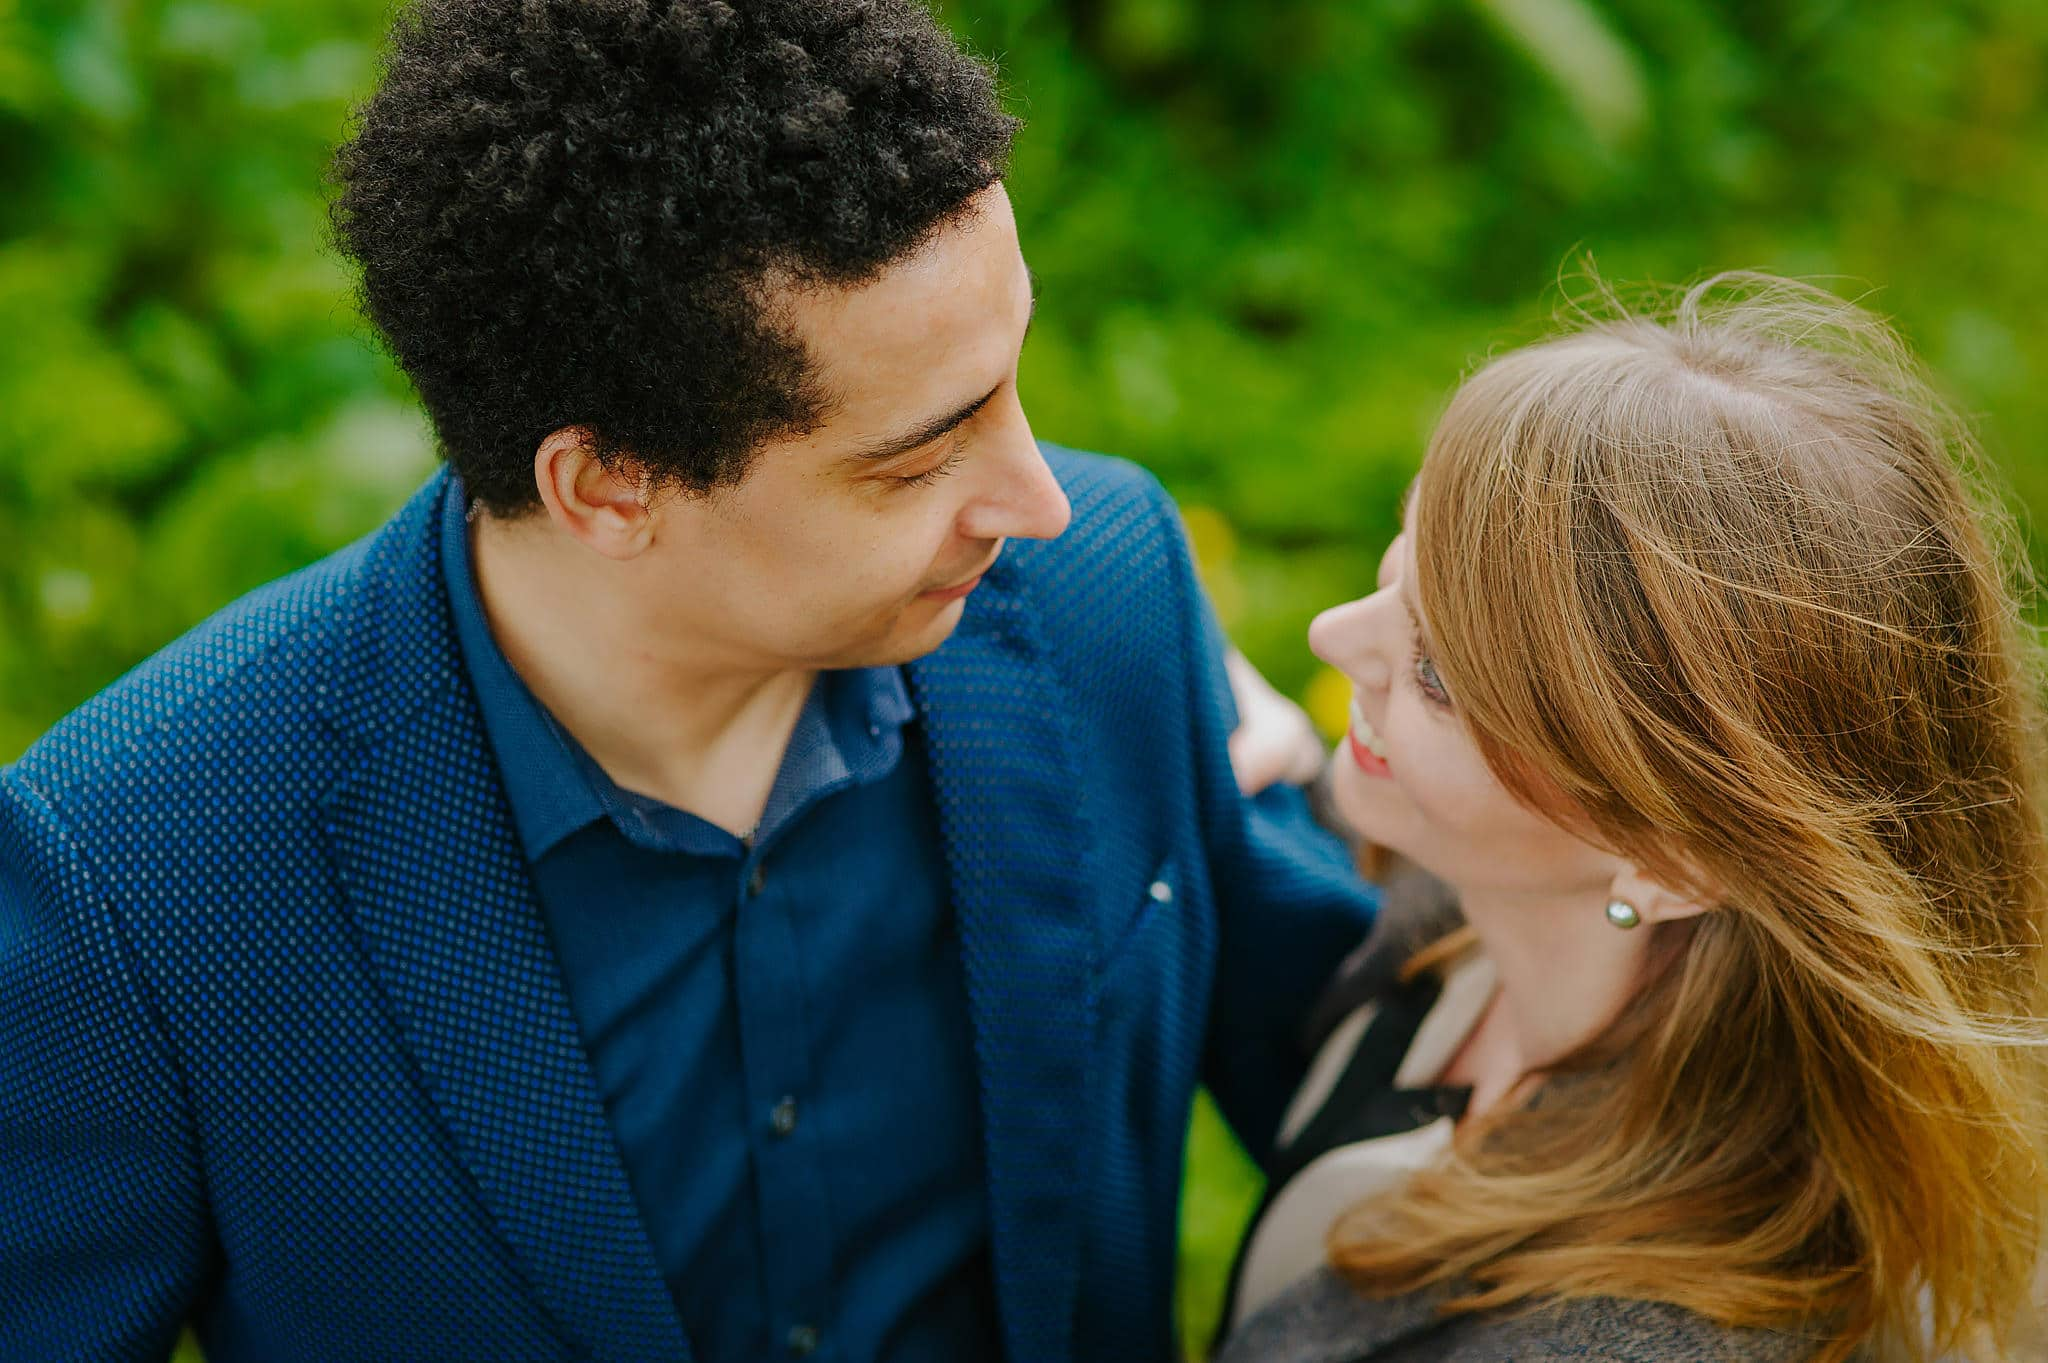 engagement photography worcester 9 - Chris + Malgosia | Engagement photography Worcester